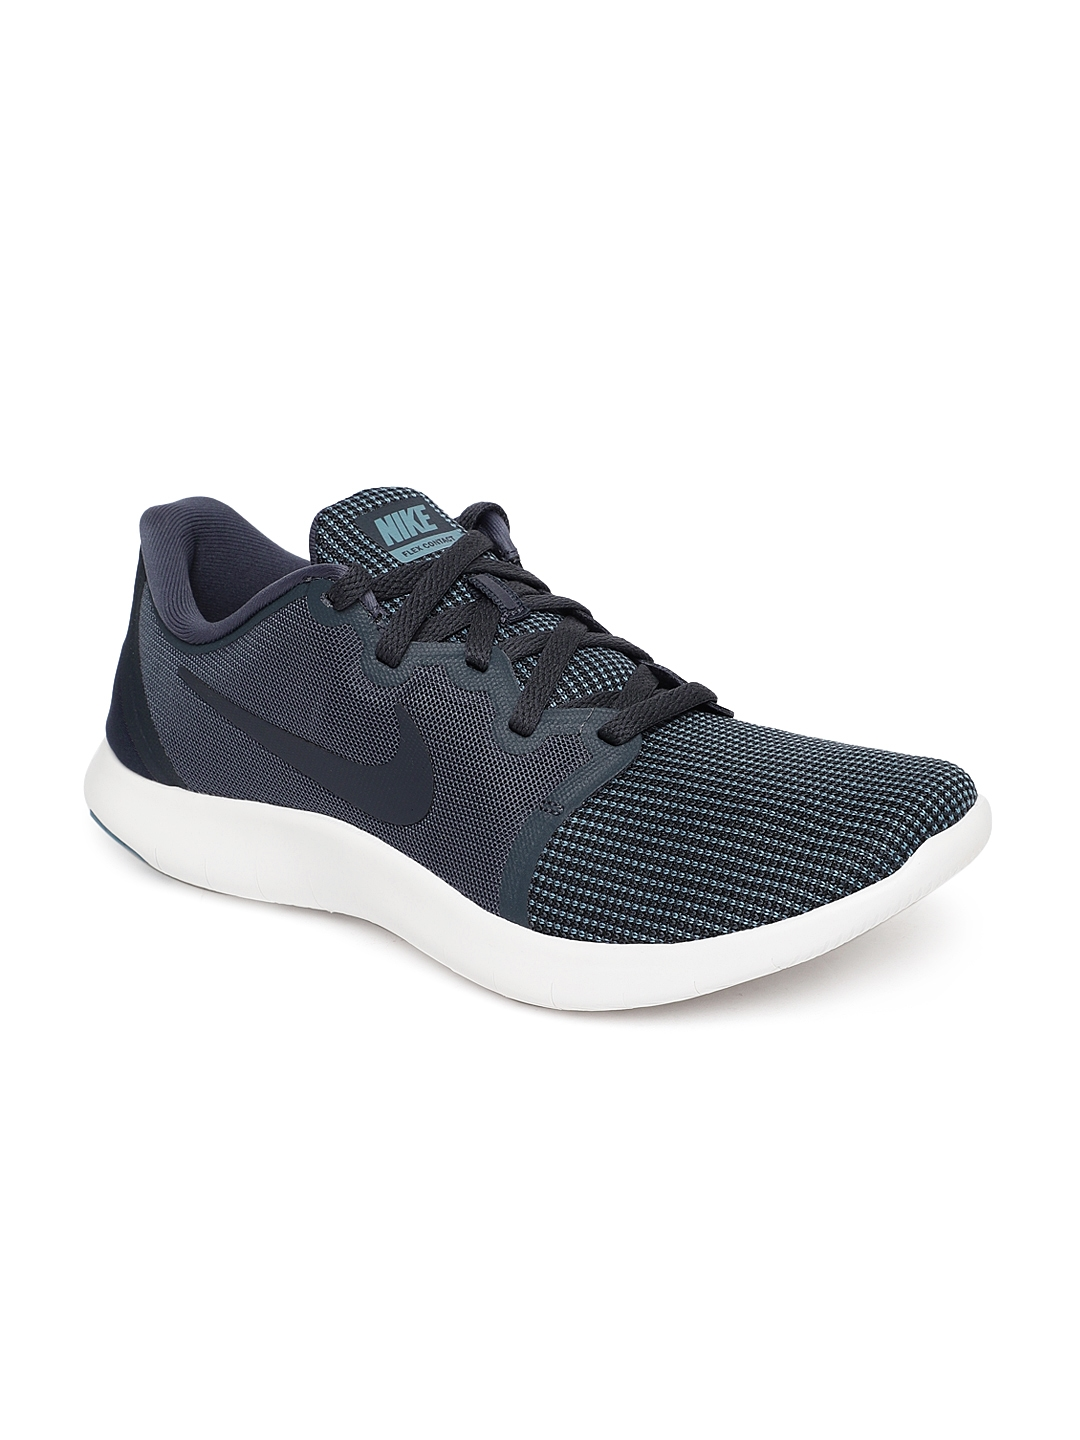 best sneakers d9c58 04153 Nike Mens NIKE FLEX CONTACT 2 Running Shoes